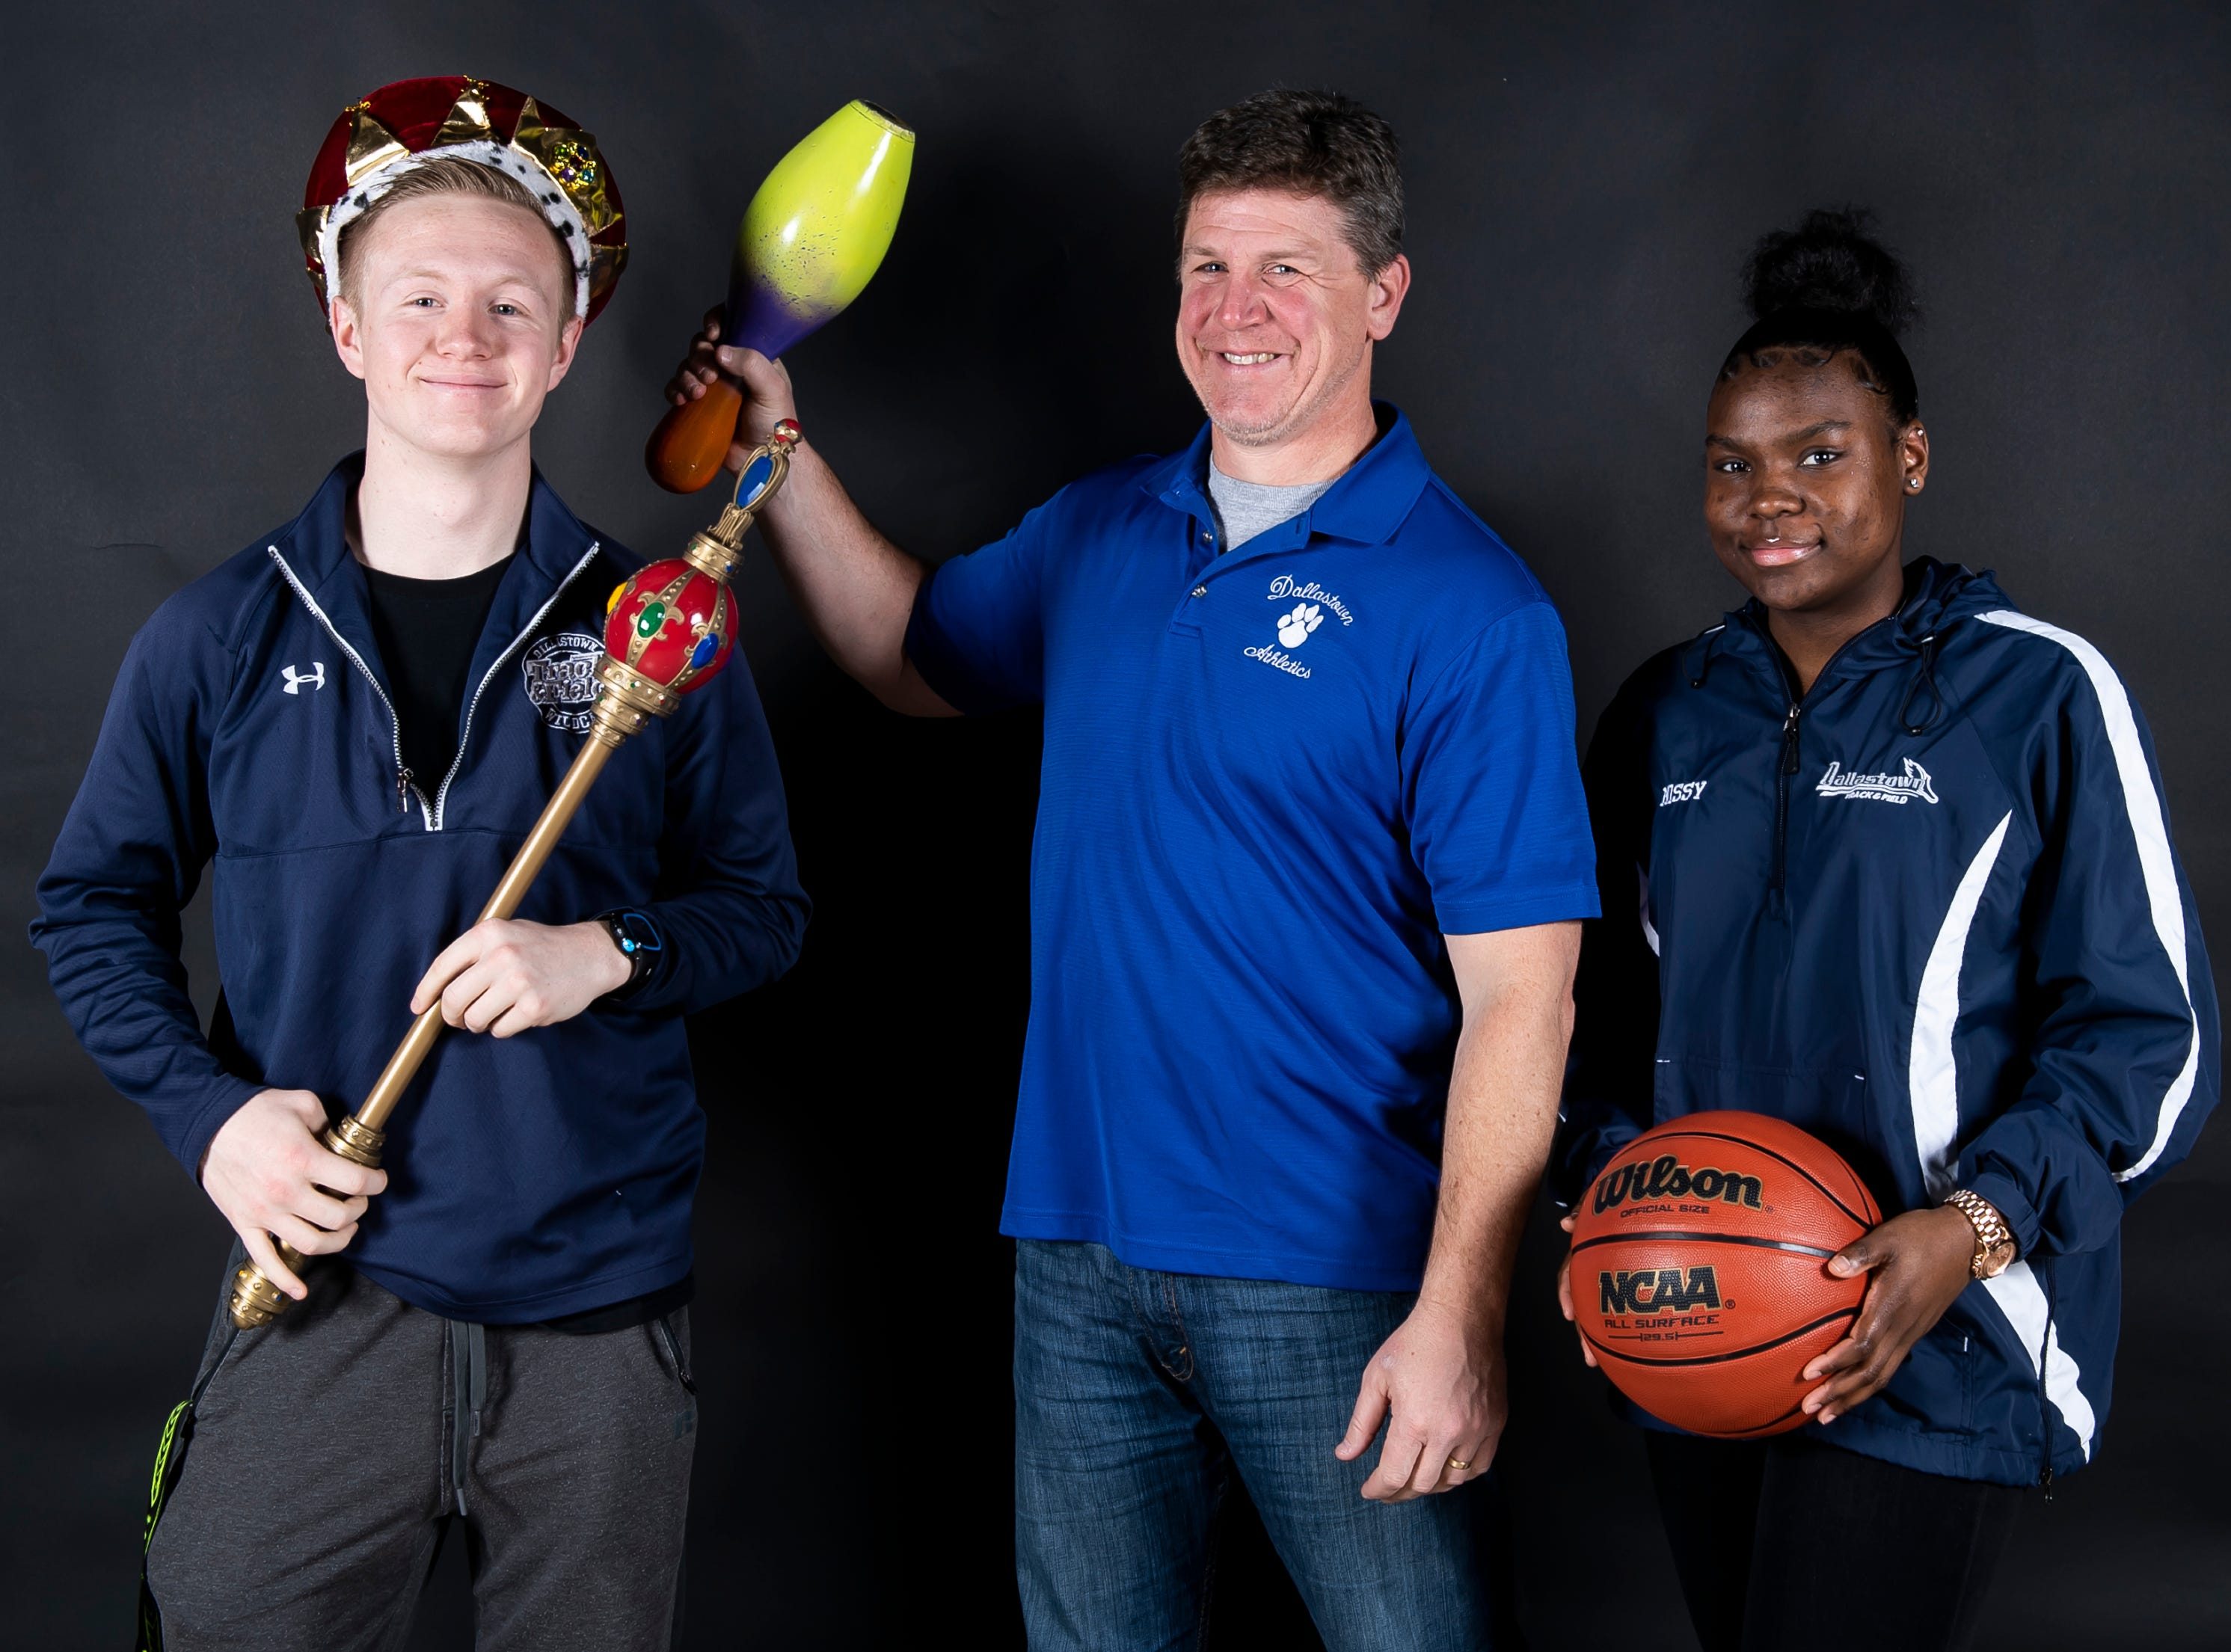 Dallastown track and field coach Neil Gutekunst and athletes Thomas Viens and Lynnethia Shanks pose in the GameTimePA photo booth during spring sports media day in York Sunday, March 10, 2019.